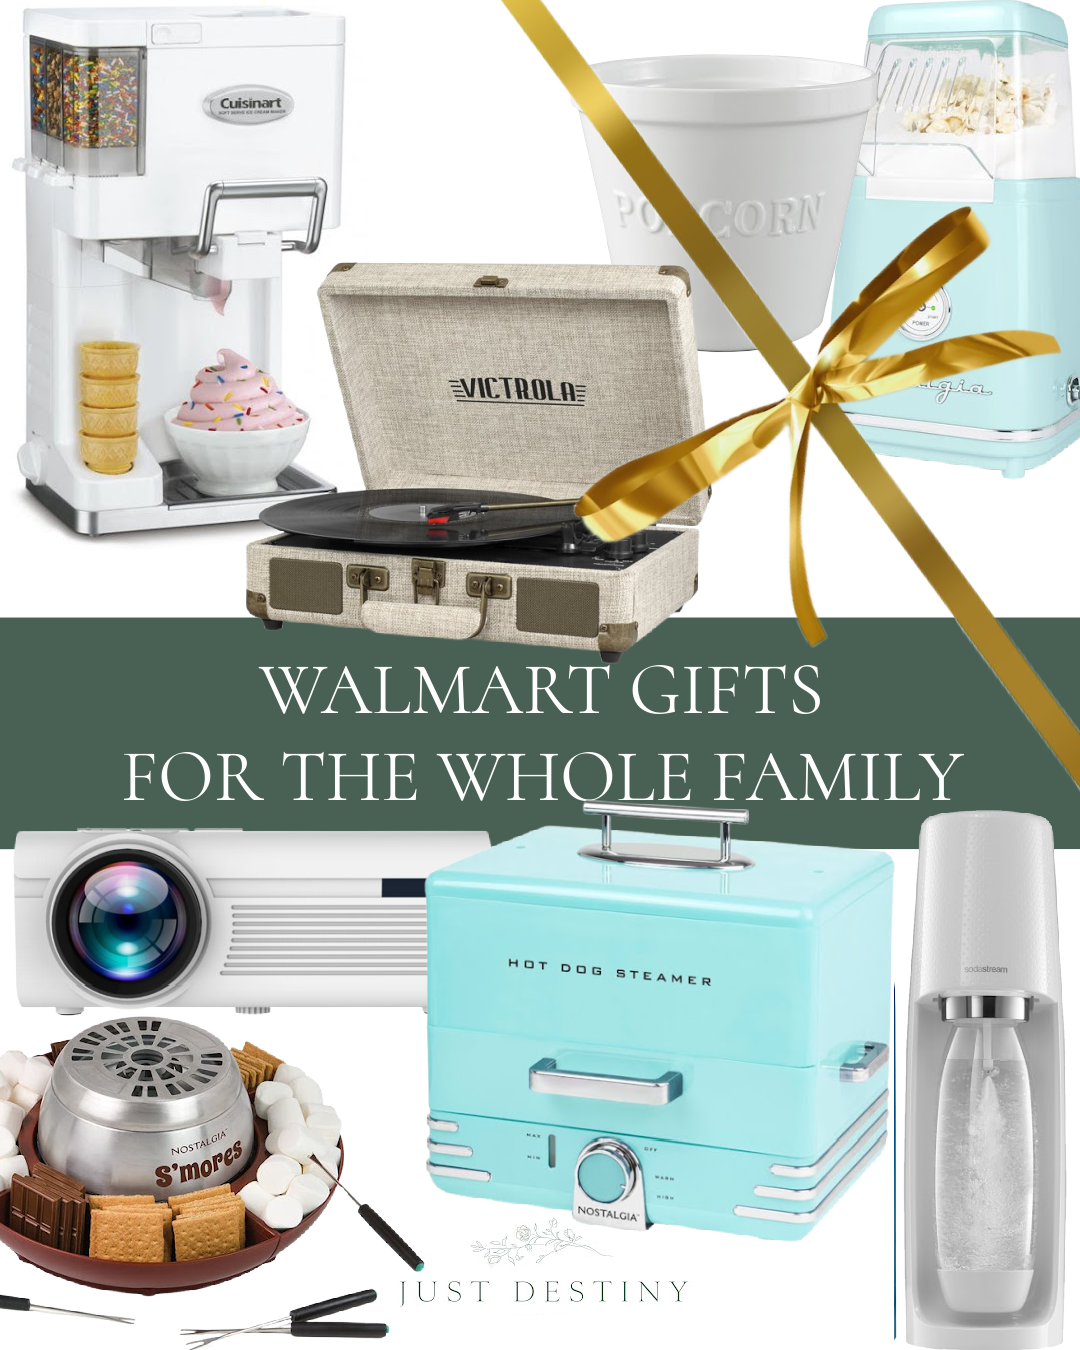 Walmart Gifts for the Family